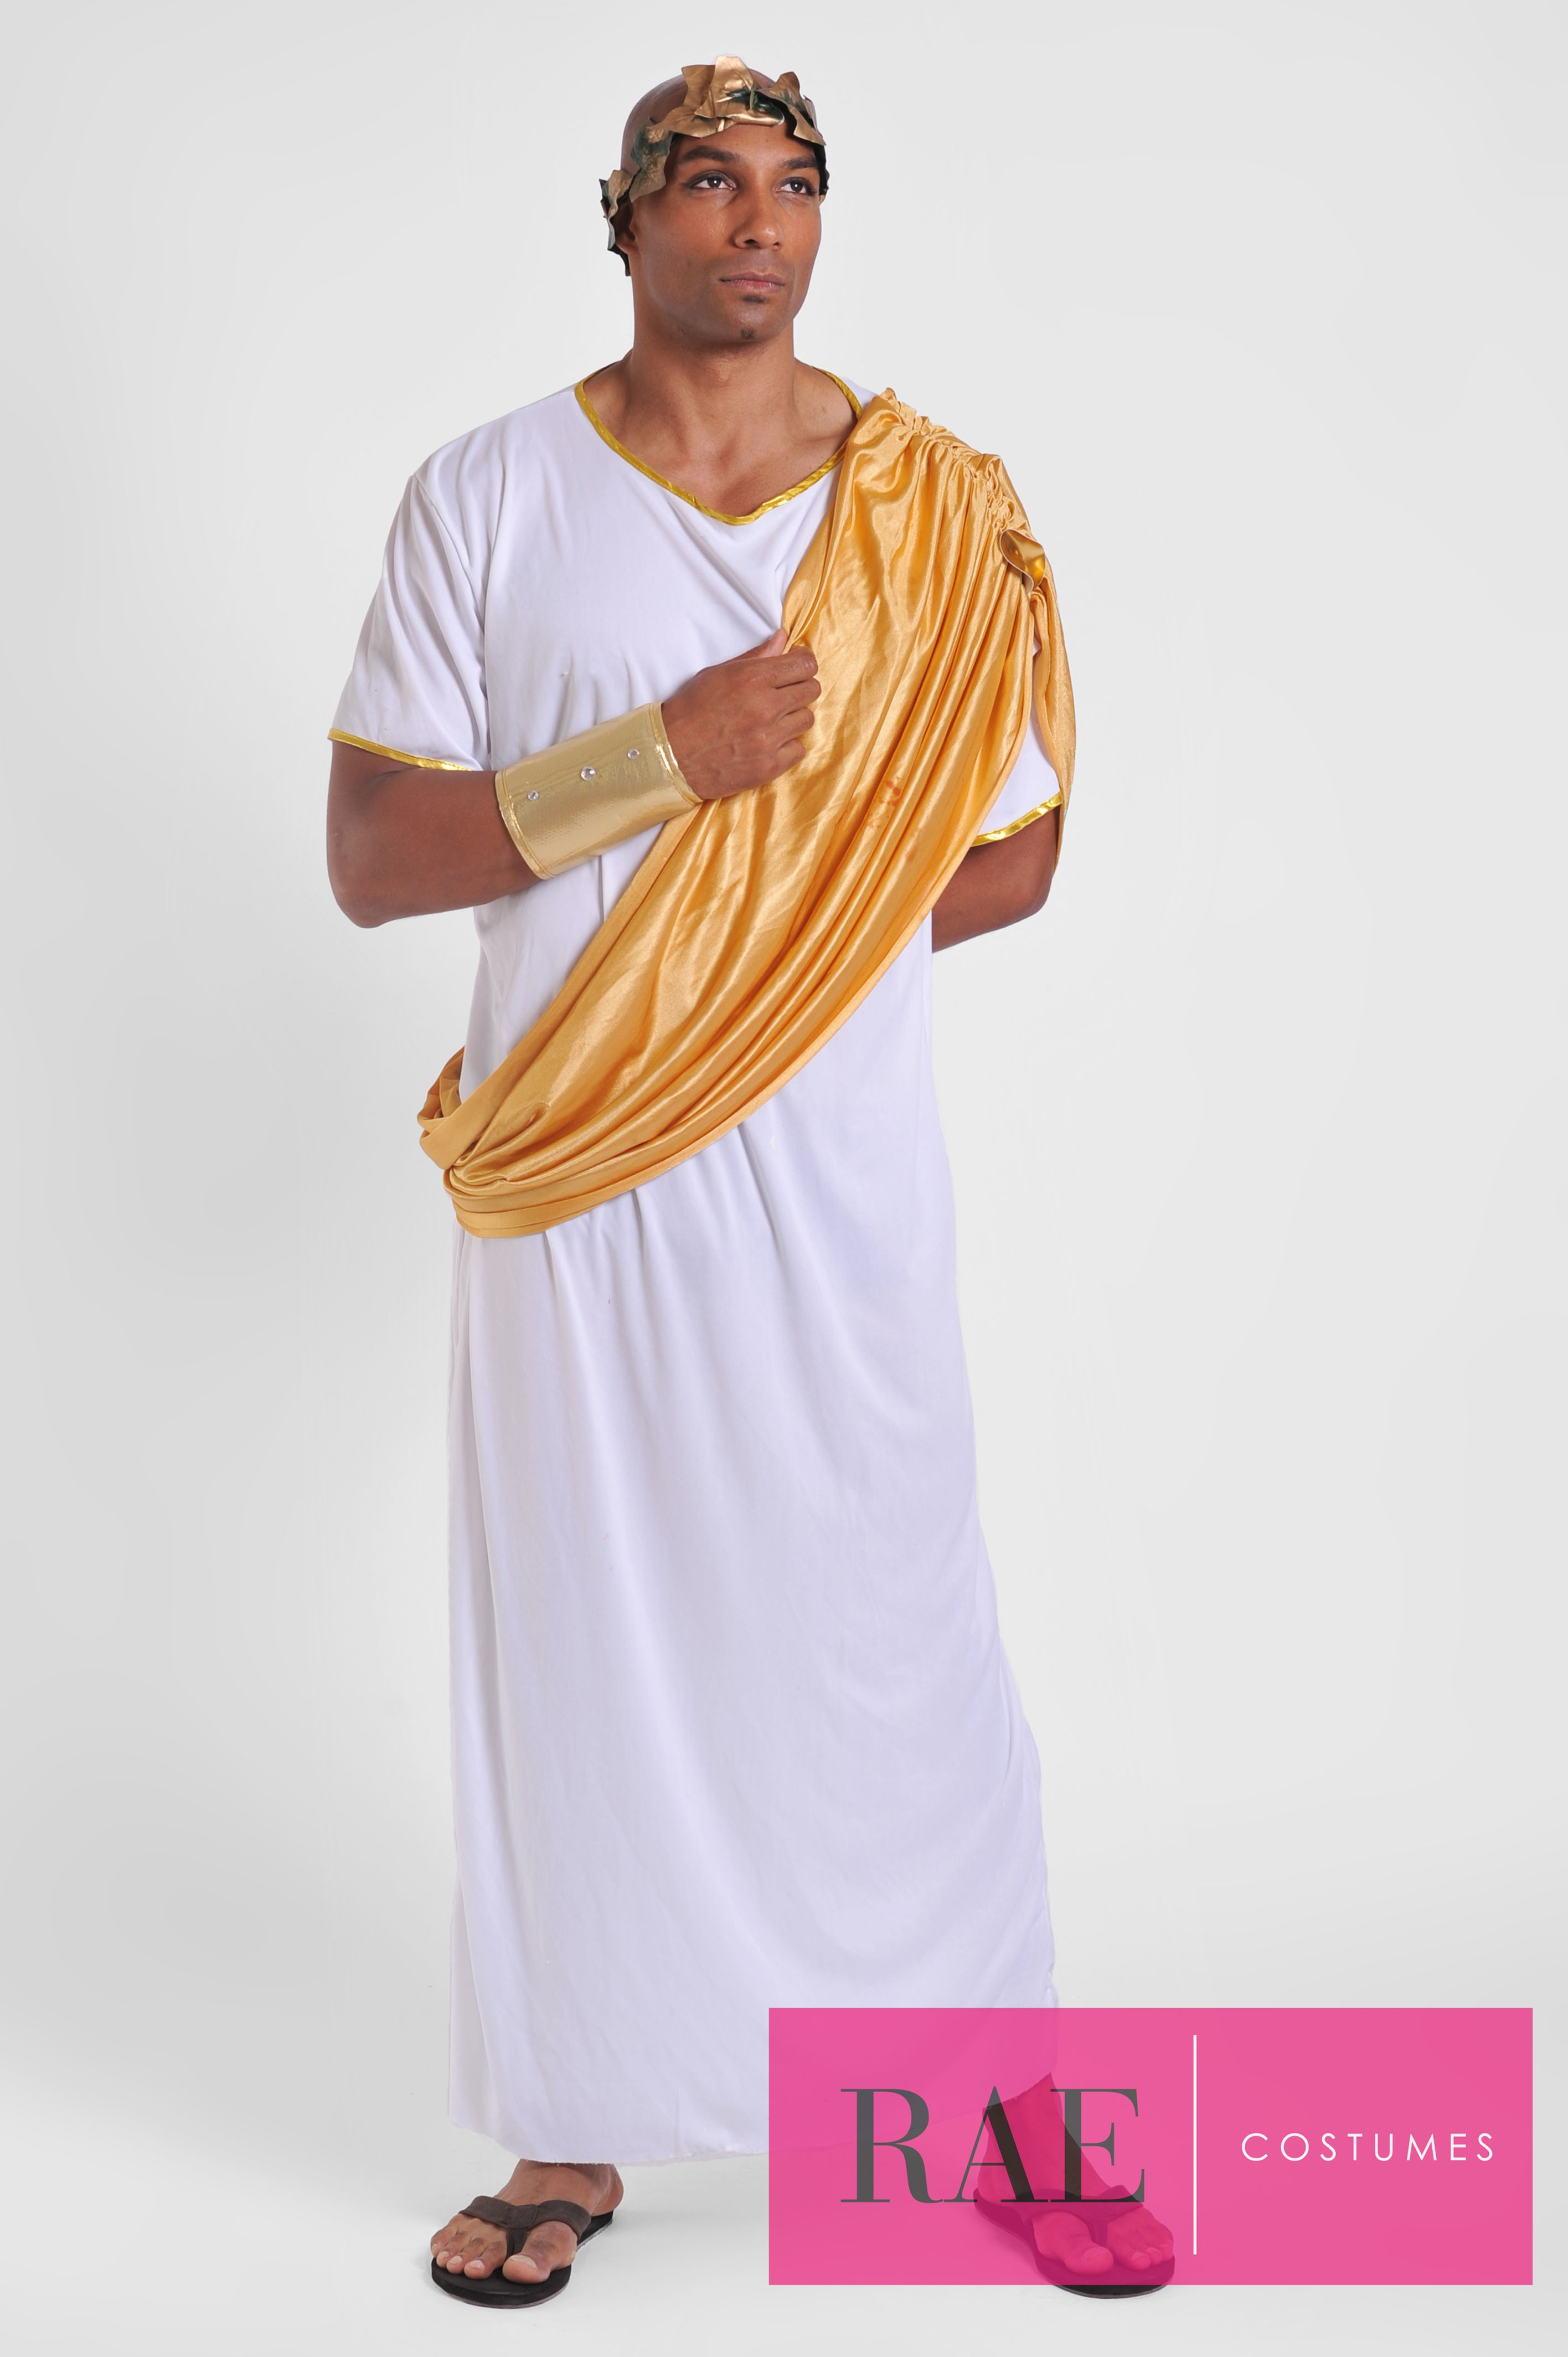 dress like a king with this roman king costume quantity 1